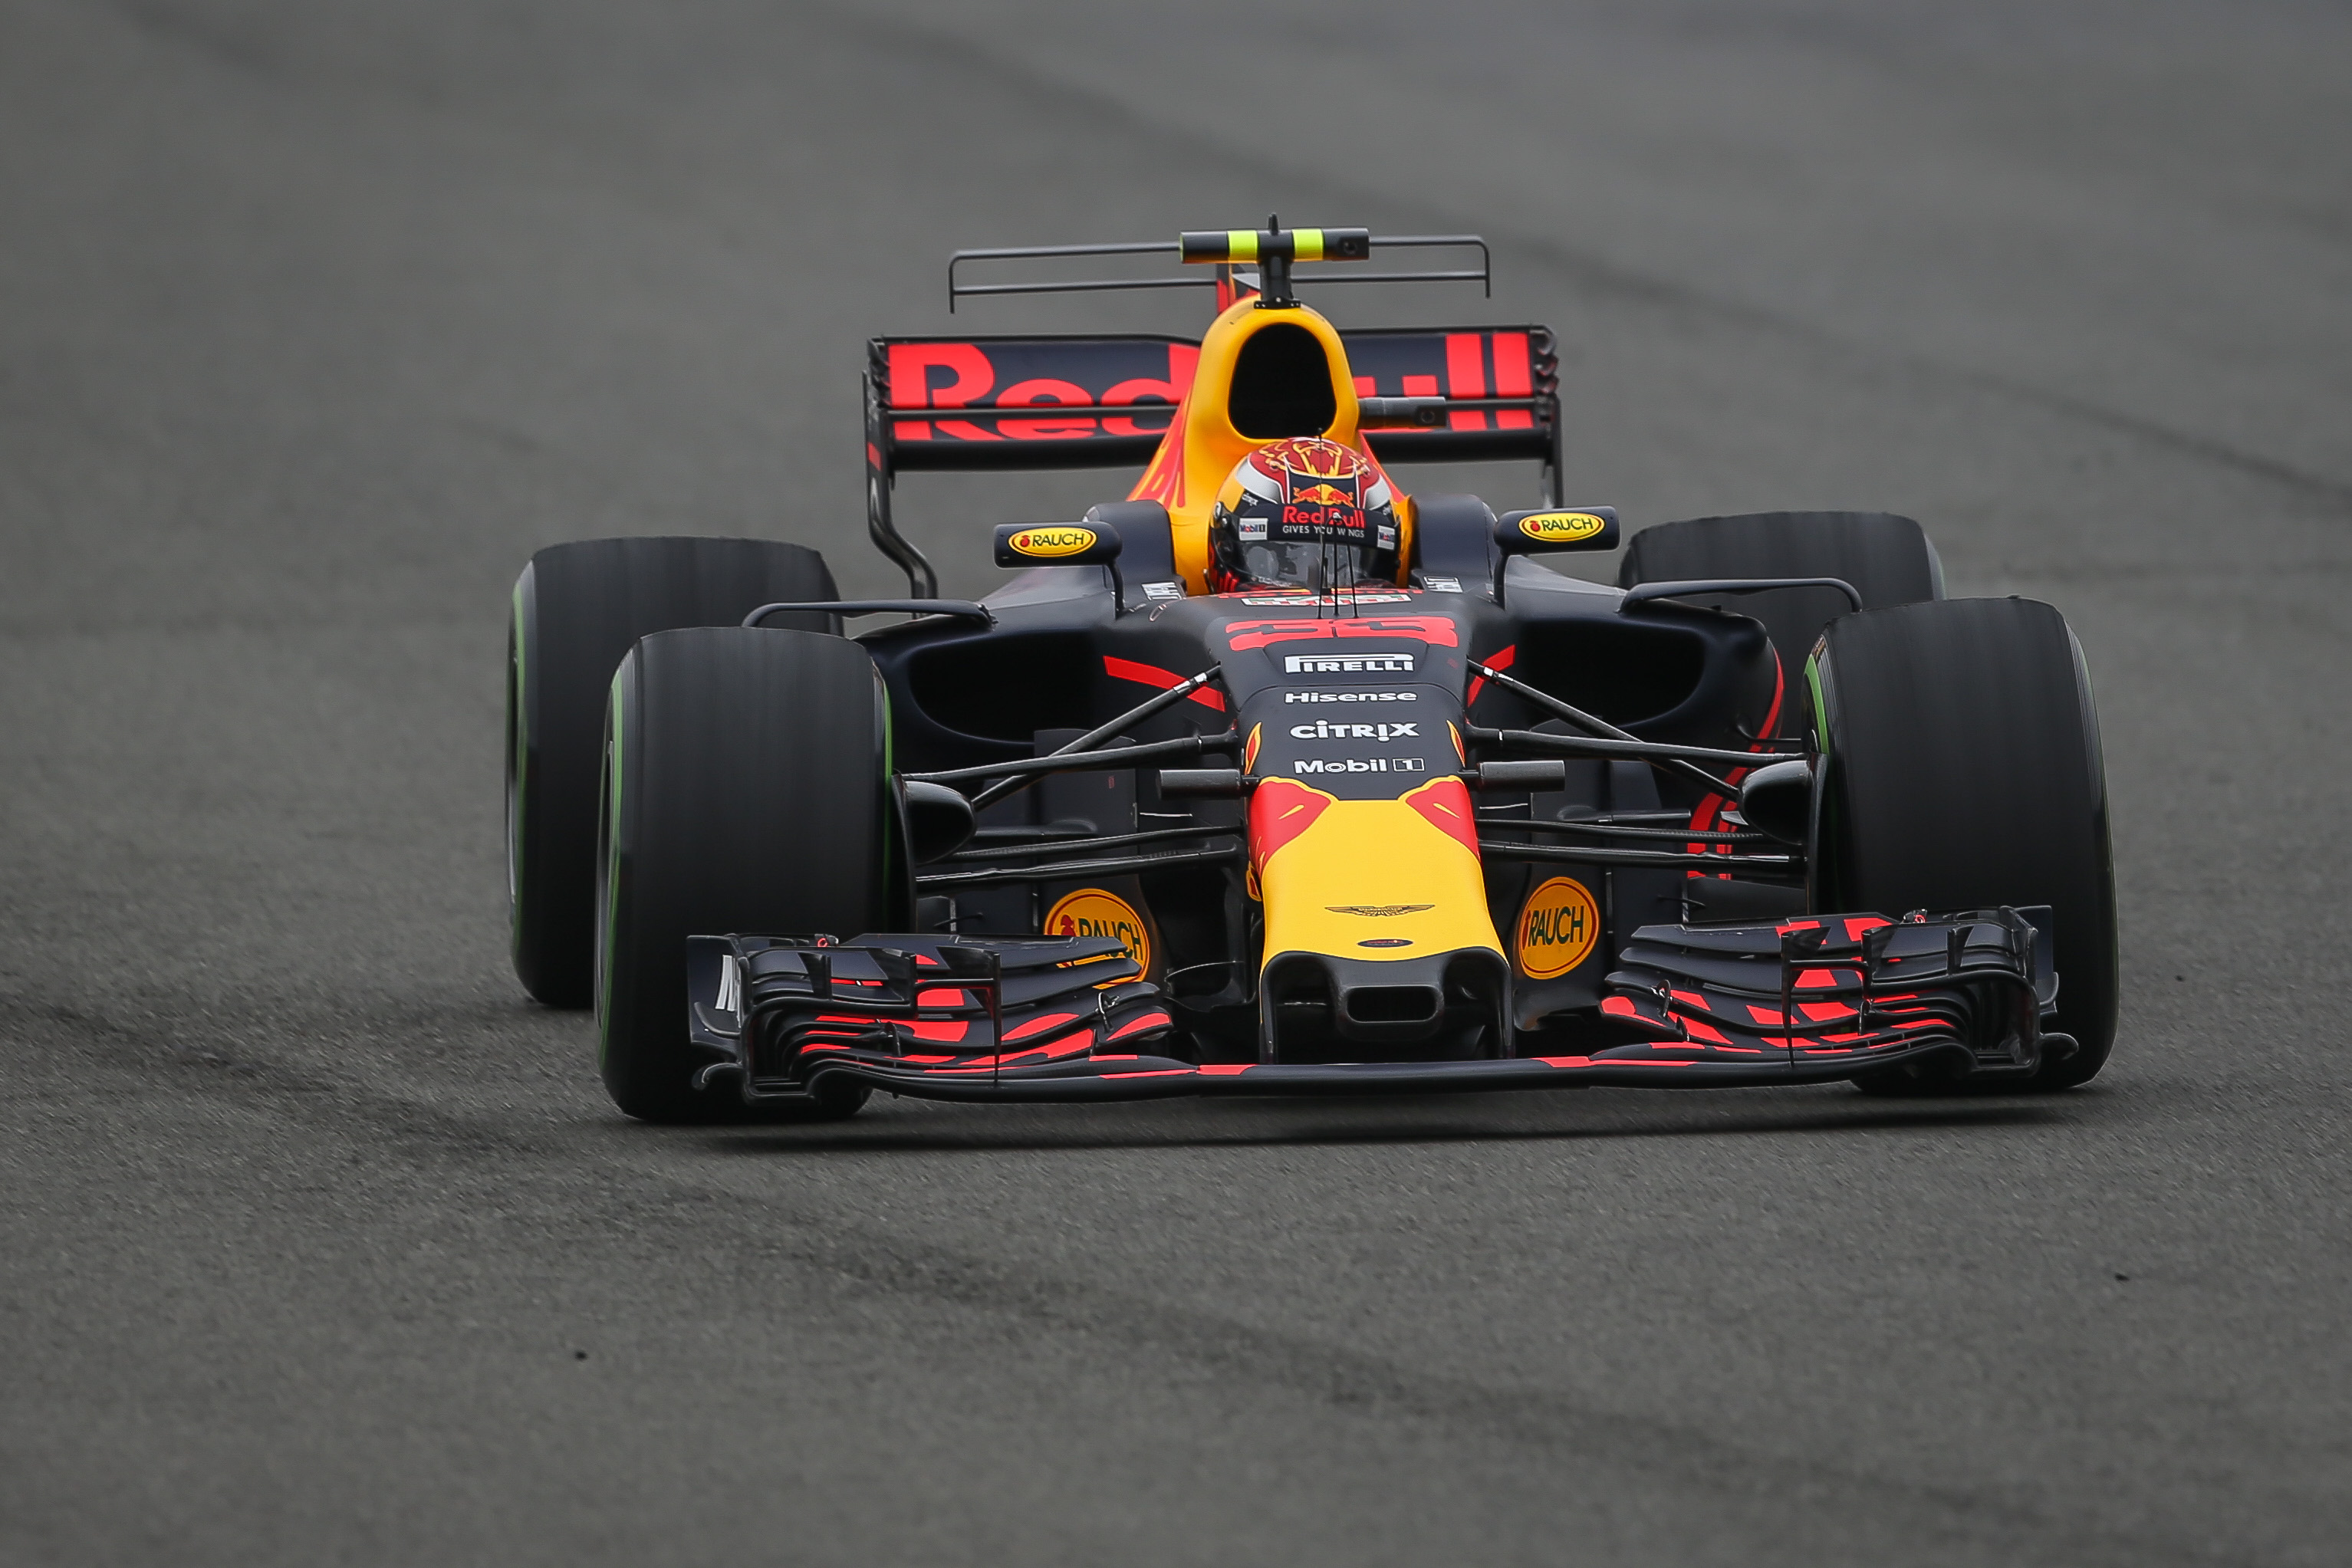 Wallpapers British Grand Prix of 2017 | Marco's Formula 1 Page